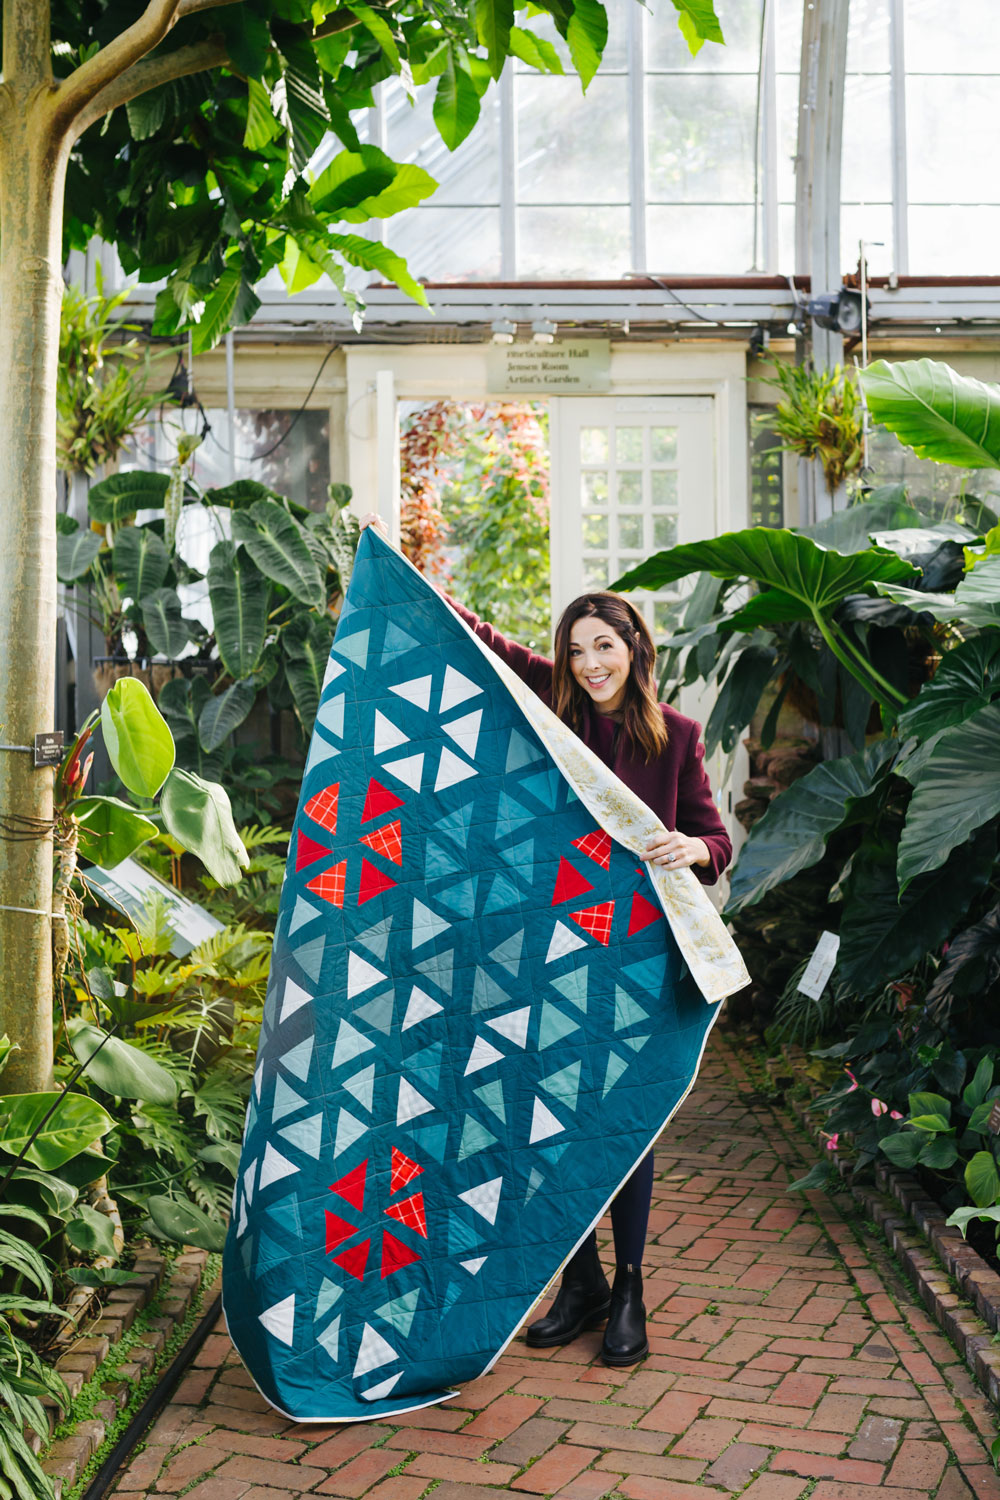 The perfect Christmas quilt pattern! Tips and video tutorials on how to quilt with triangle blocks for the Perennial Quilt by Suzy Quilts | suzyquilts.com #ChristmasQuilt